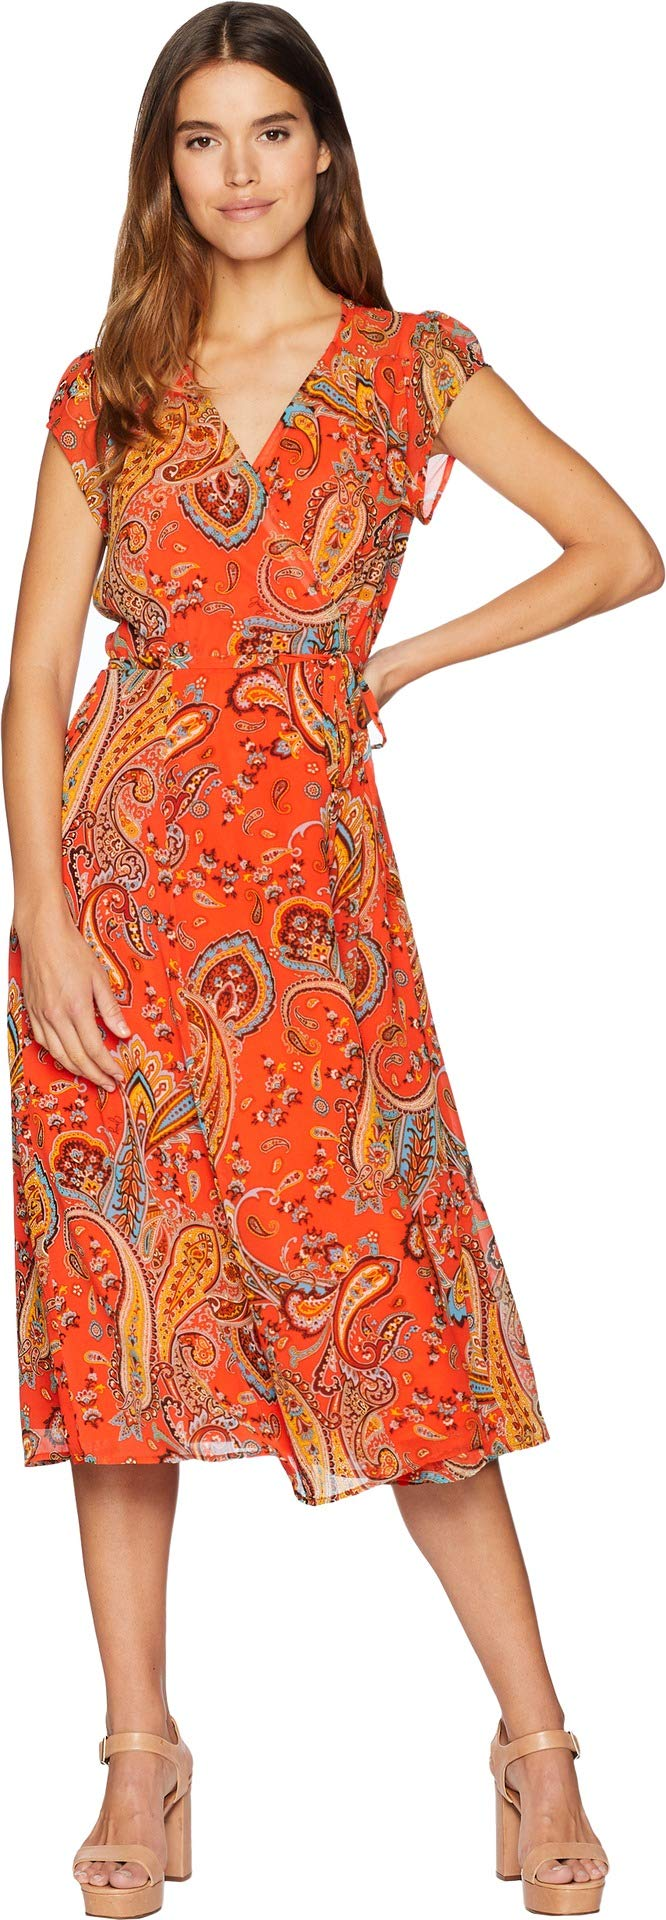 Juicy Couture Women's Rustic Paisley Wrap Dress Hazy Summer Rustic Large